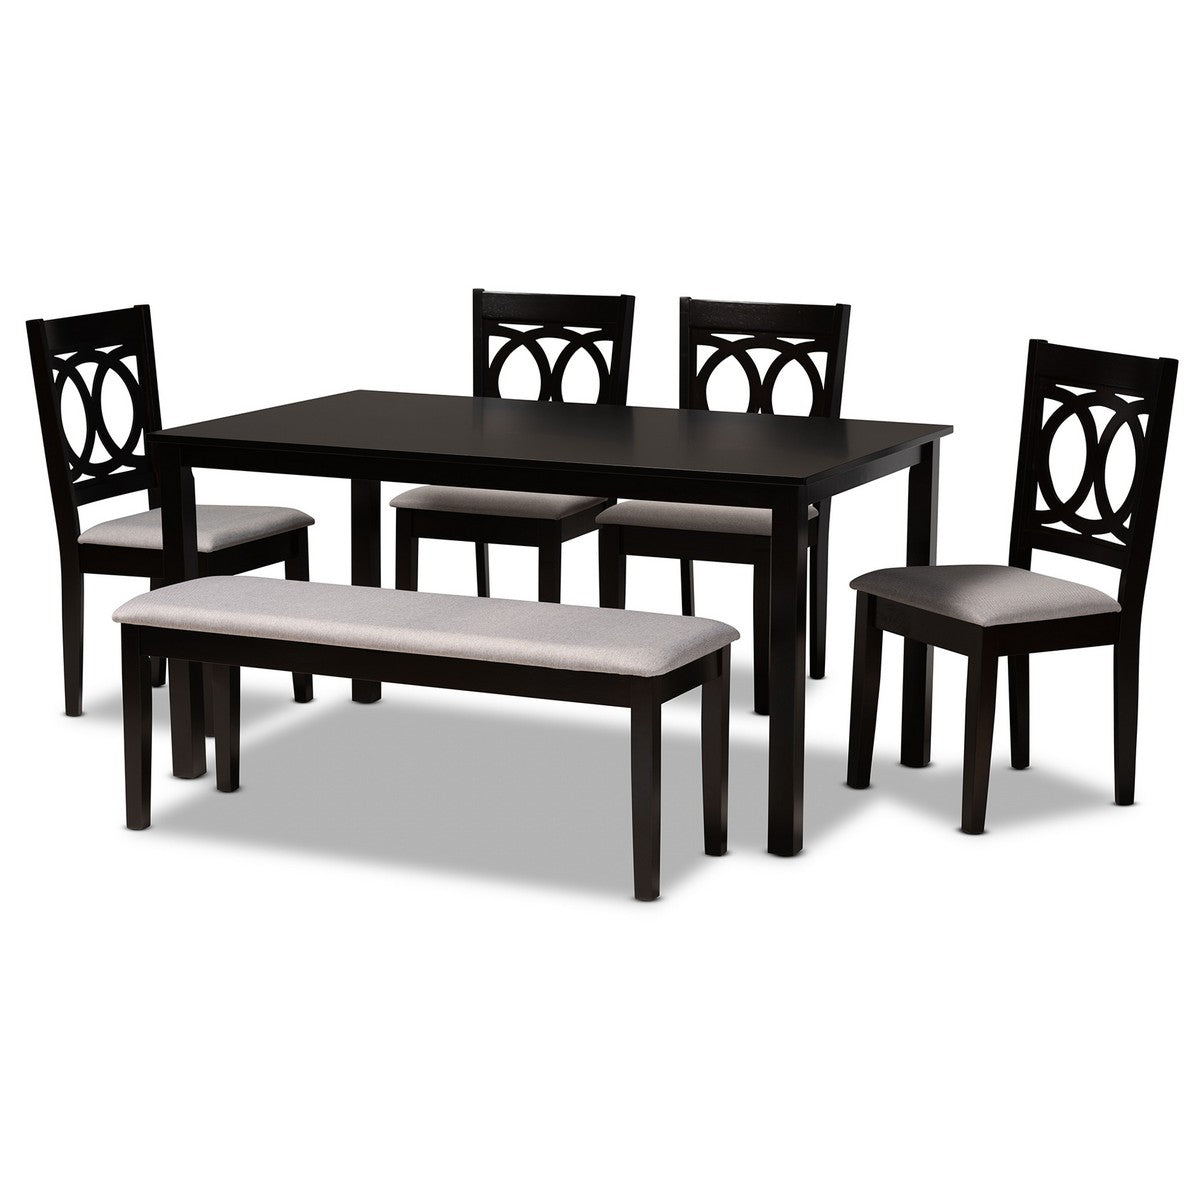 Baxton Studio Bennett Modern and Contemporary Grey Fabric Upholstered and Dark Brown Finished Wood 6-Piece Dining Set Baxton Studio-Dining Sets-Minimal And Modern - 1